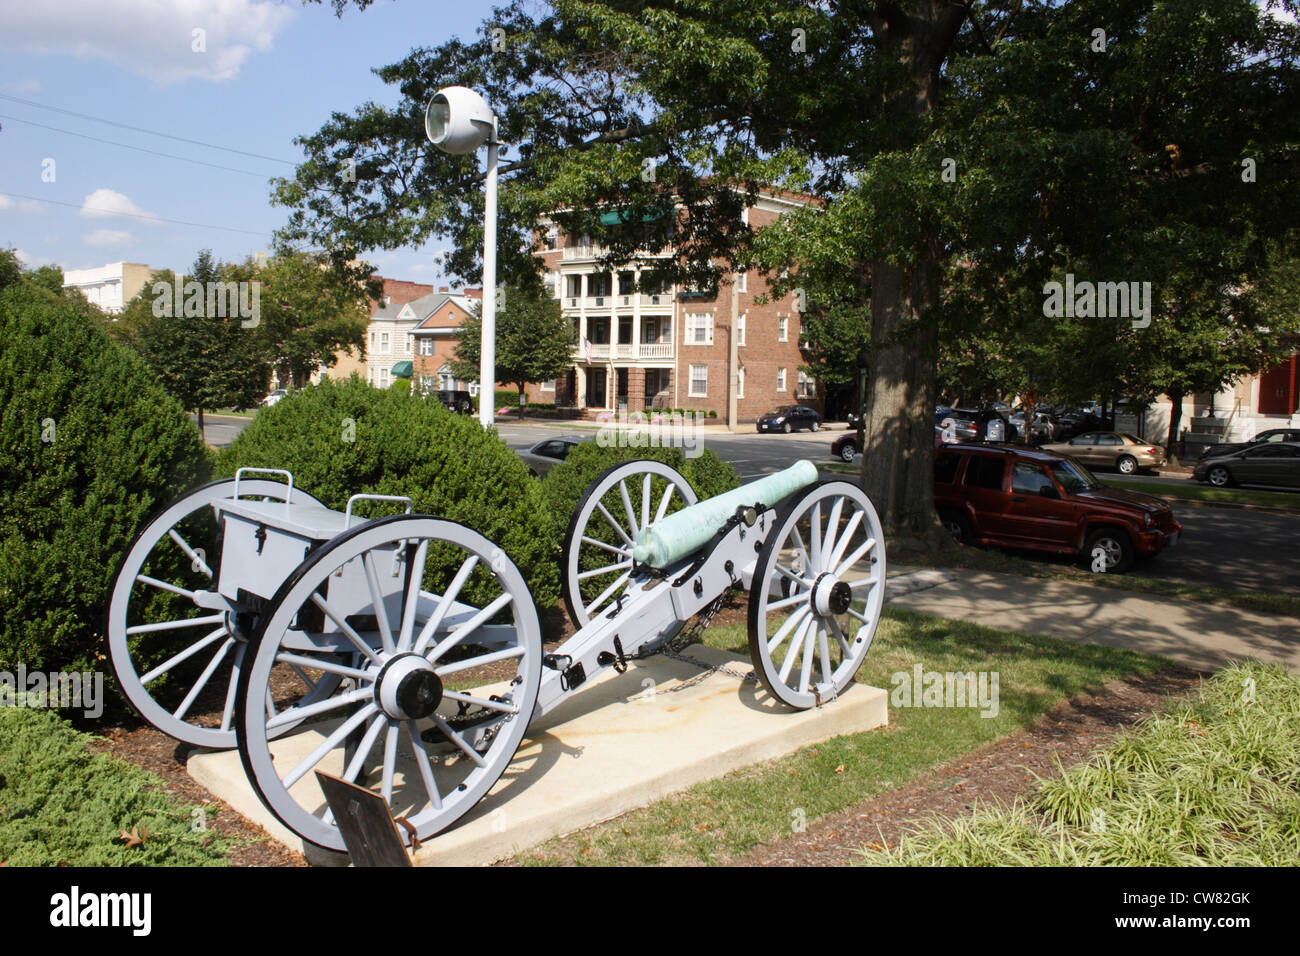 Cannon from the American Civil War at the Virginia Historical Society in Richmond, Virginia, USA - Stock Image